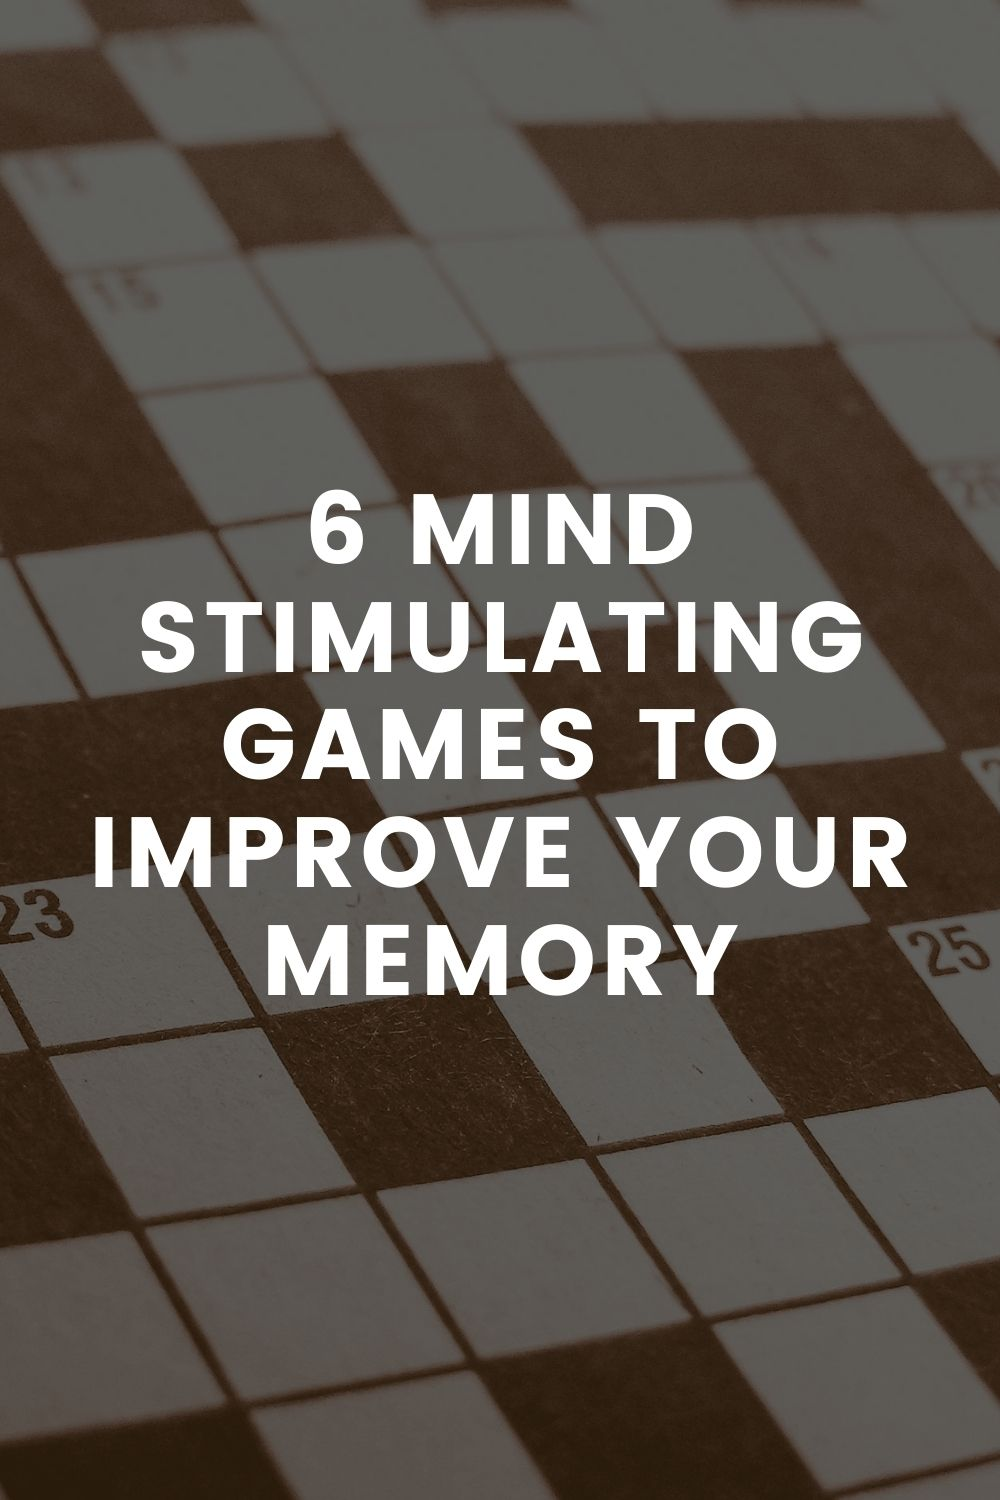 6 Mind Stimulating Games to Improve Your Memory